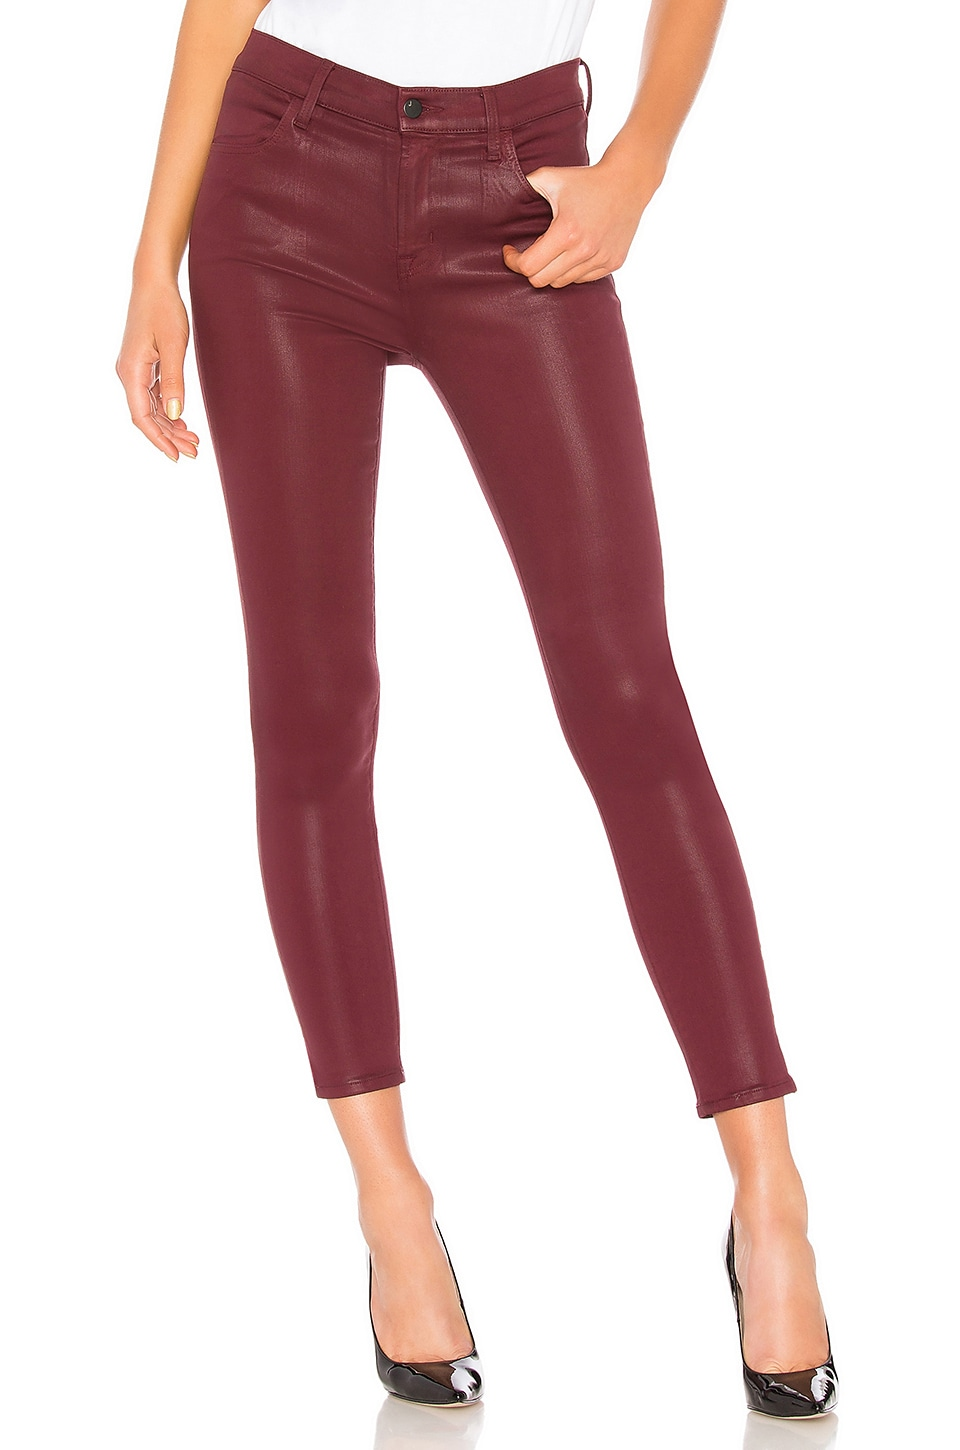 J Brand Alana High Rise Crop Skinny in Coated Oxblood